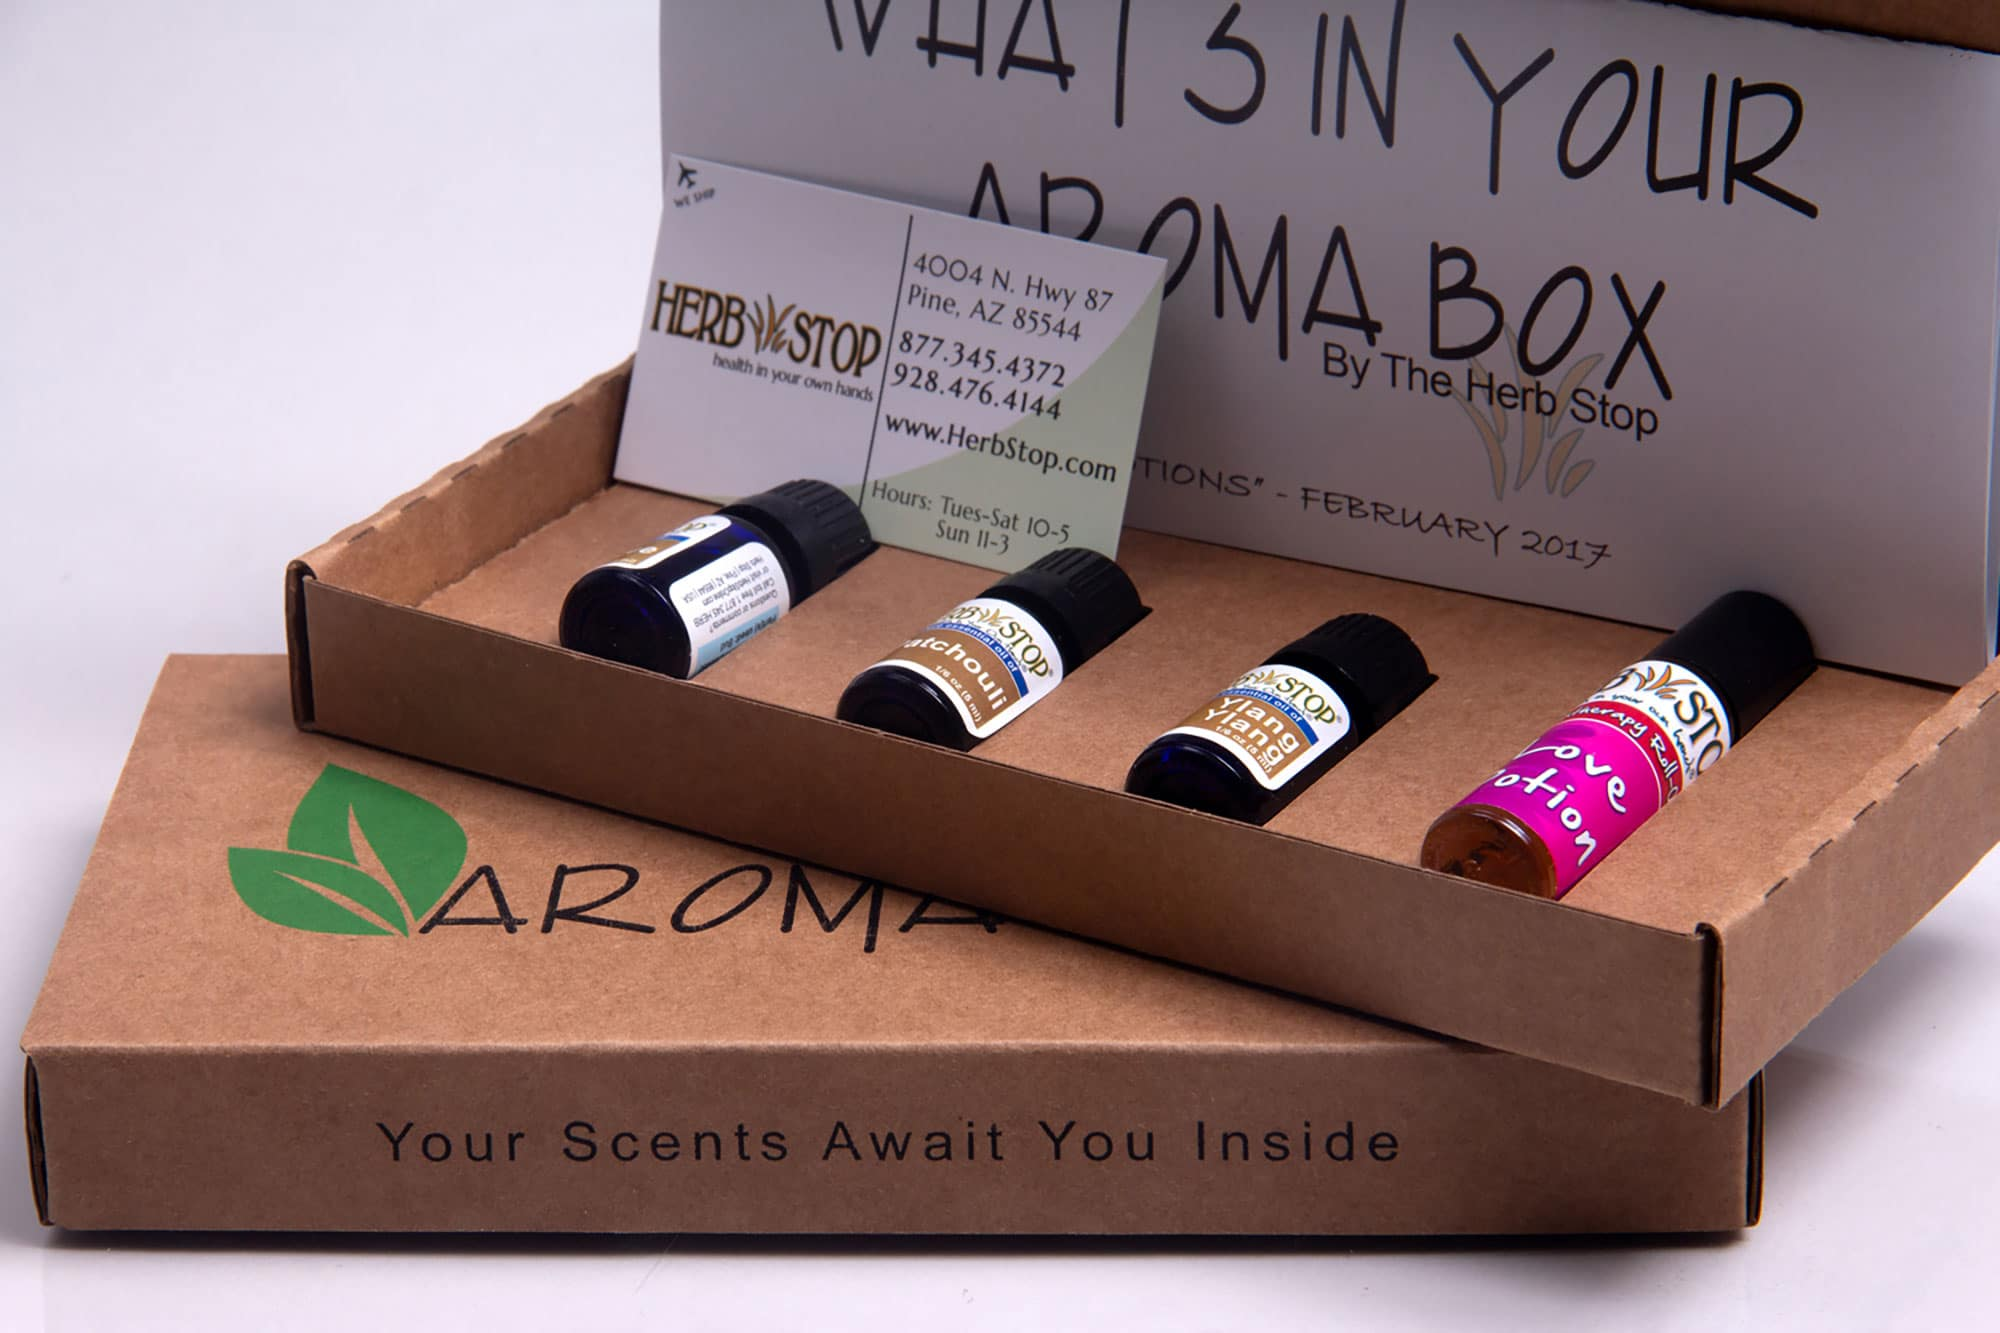 Aroma Box utilized fully recyclable custom mailing boxes with custom cardboard inserts to hold products in place.